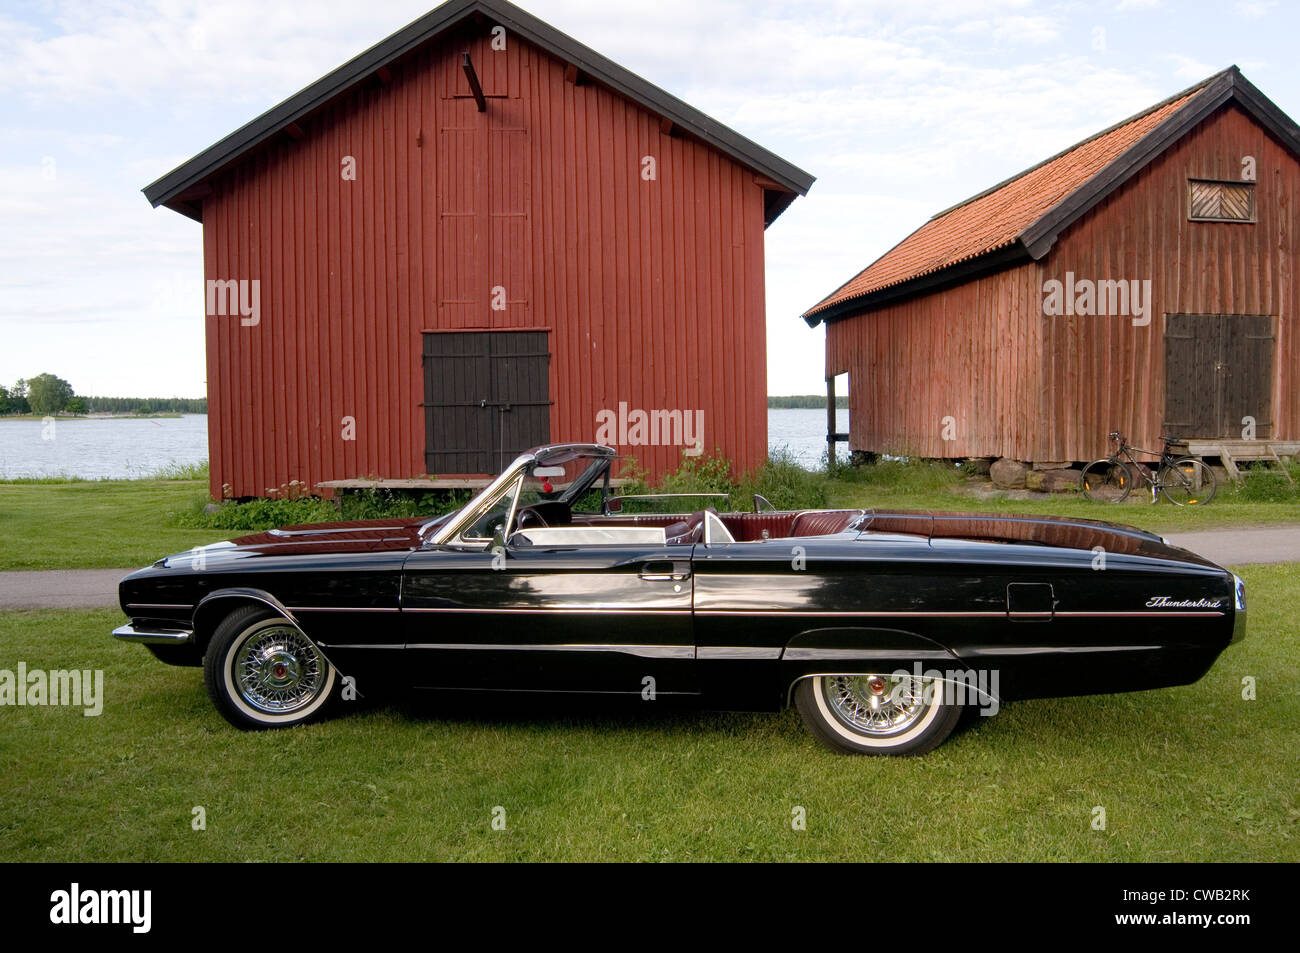 1968 ford thunderbird classic car cars convertible soft top - Stock Image